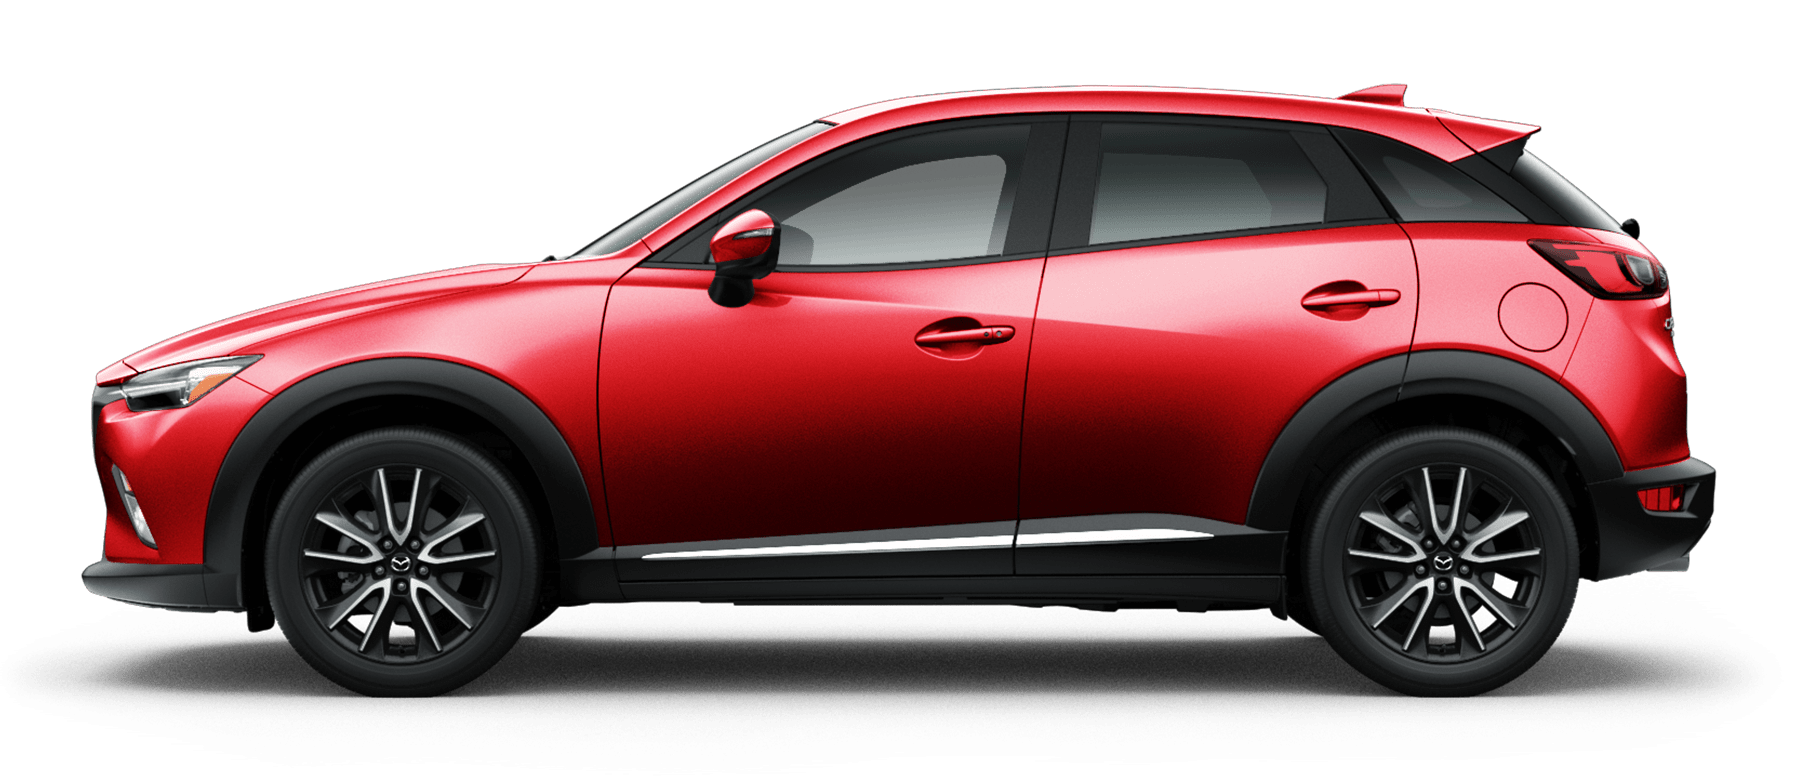 2017 mazda 3 hatchback specs features mazda usa autos post. Black Bedroom Furniture Sets. Home Design Ideas